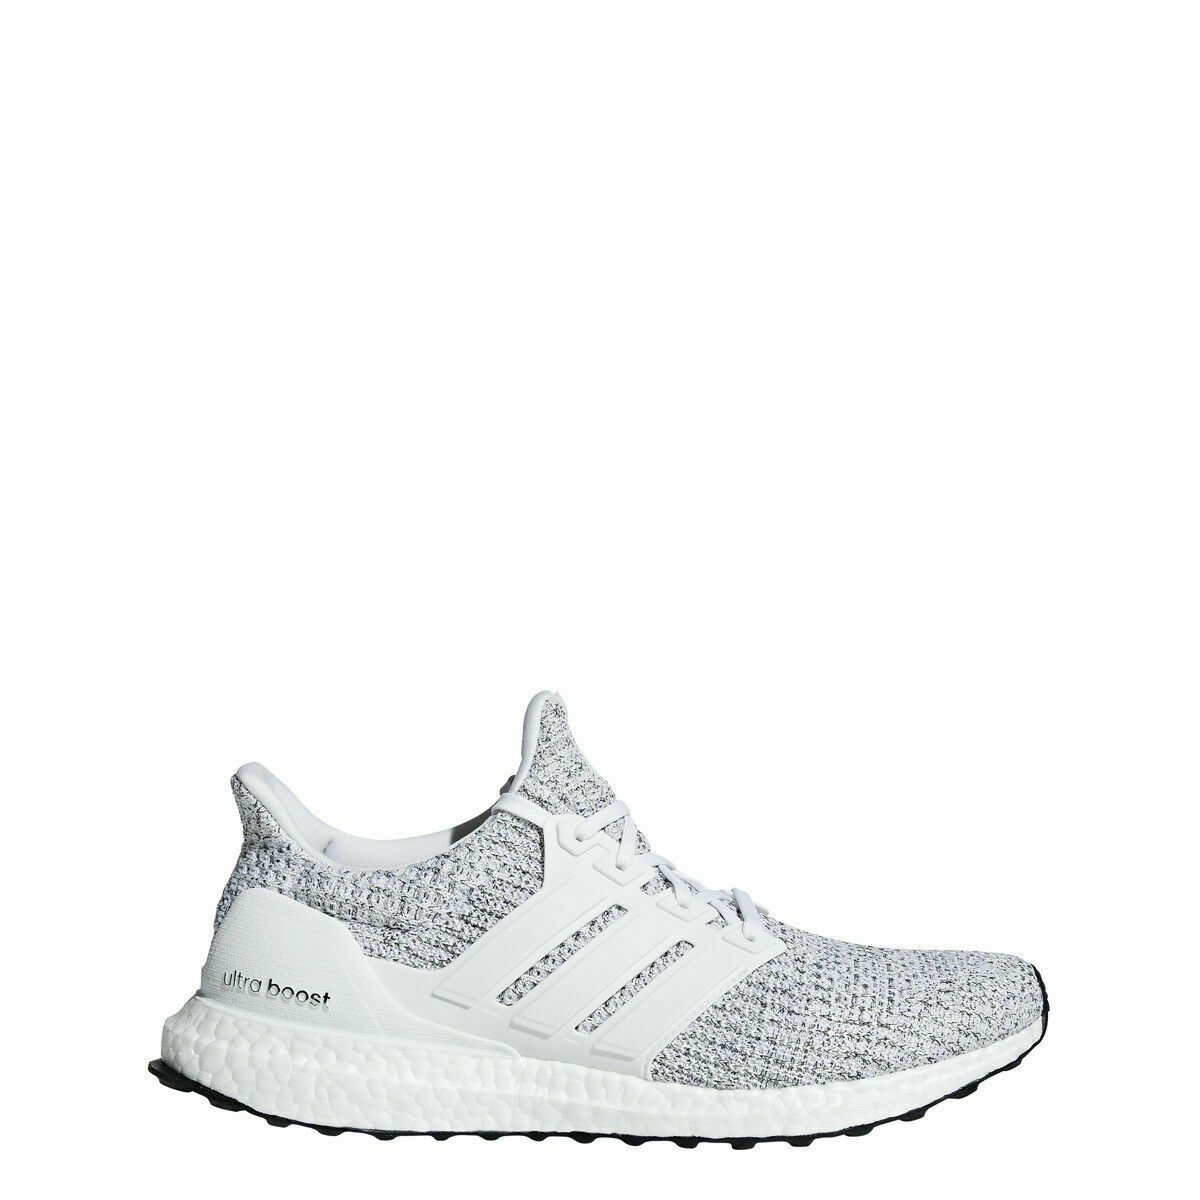 Adidas Men's Ultra Boost NEW IN BOX FREE SHIPPING Non